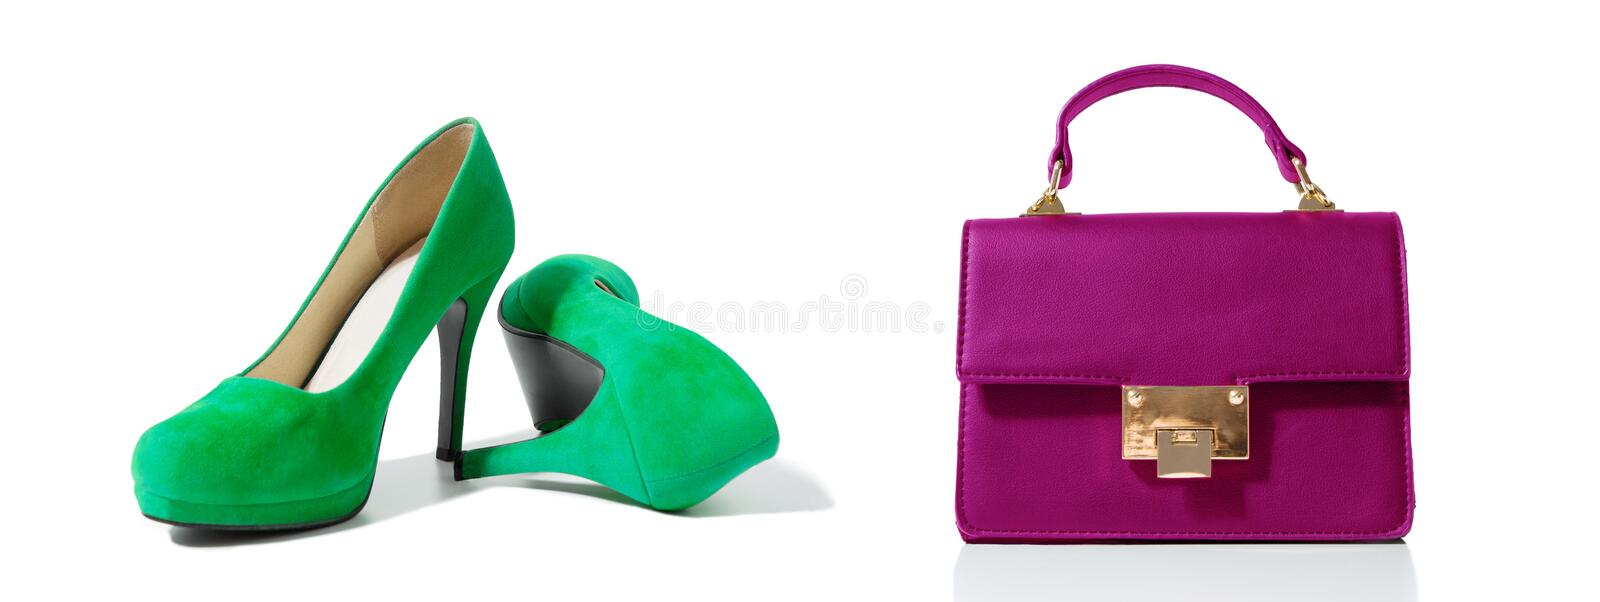 Closeup of fashionable high heels shoes and woman bag isolated on white background. Green color shoe and pink handbag on floor. Shopping and fashion concept royalty free stock photography